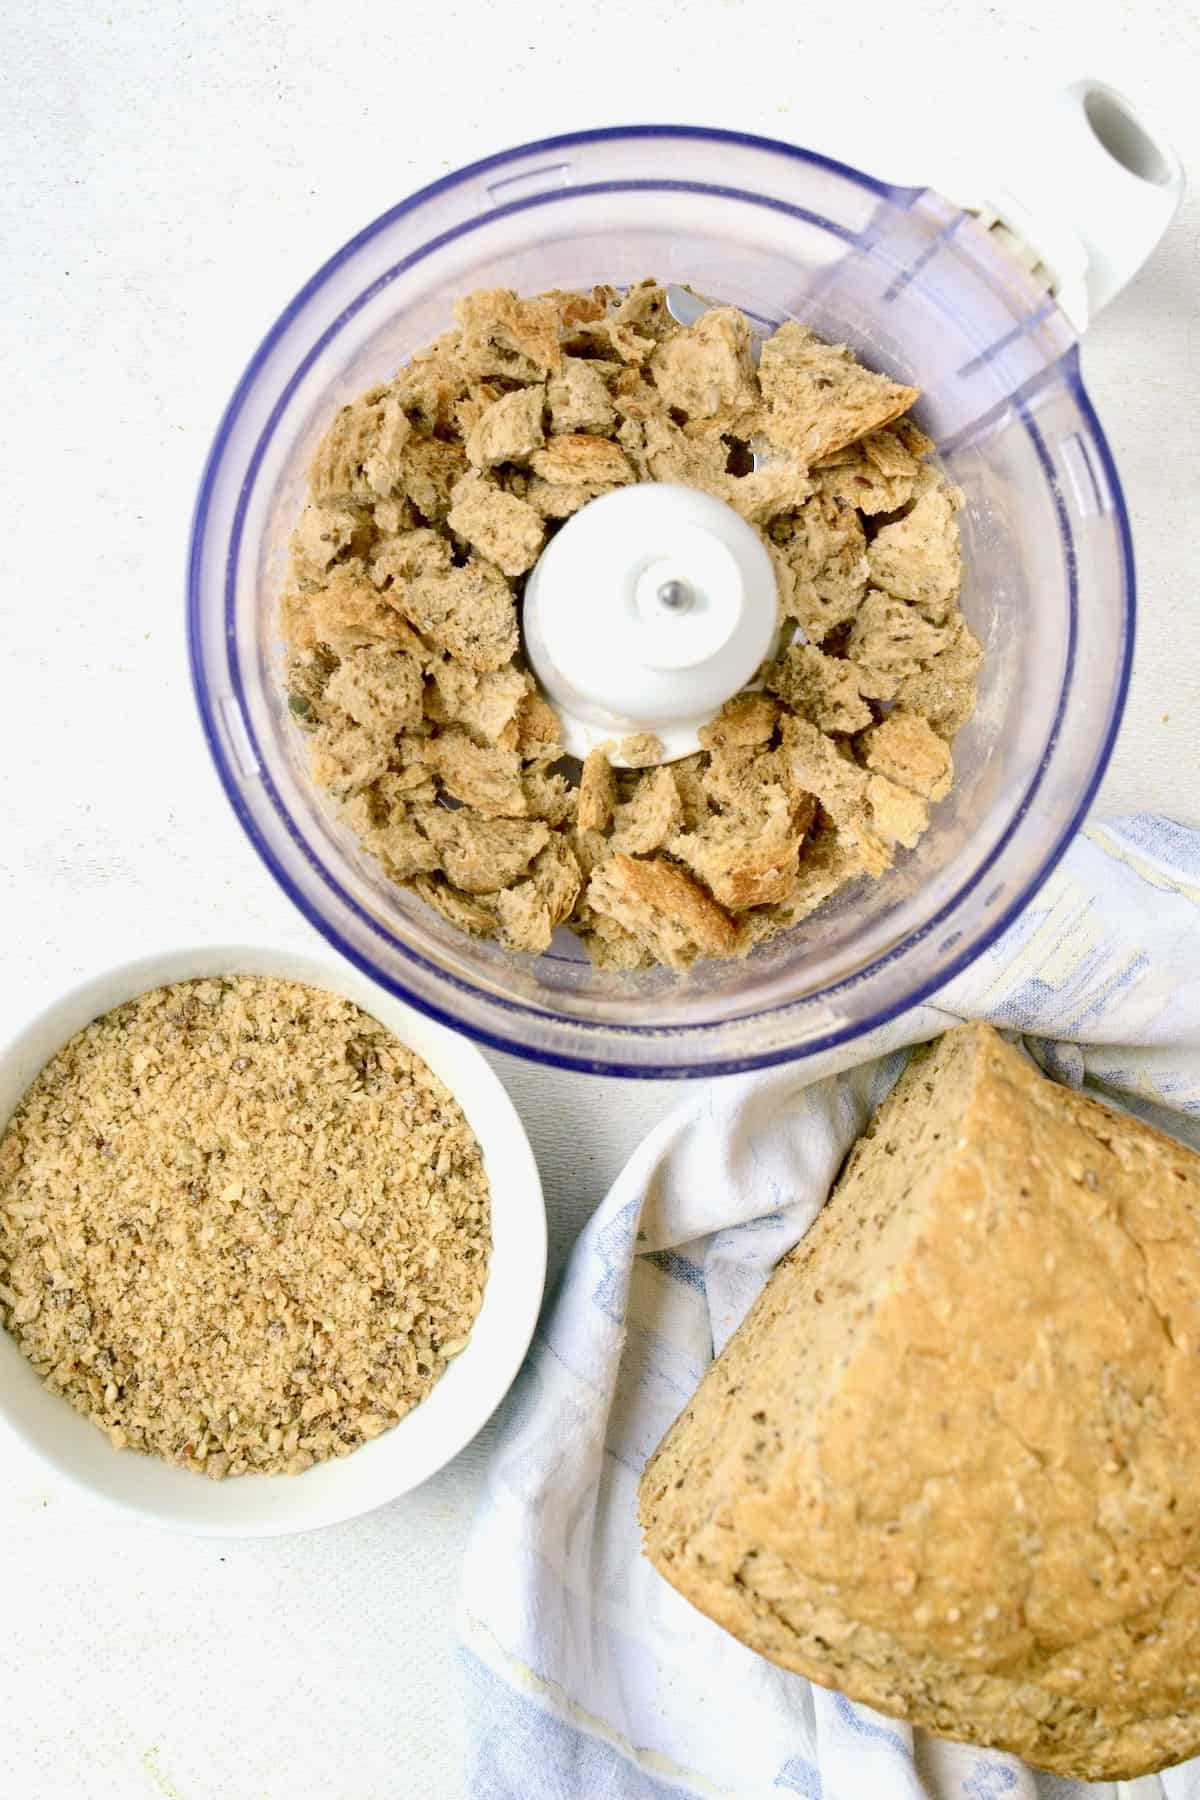 A food processor bowl containg bread cubes, next to a loaf of bread and bowl of breadcrumbs.